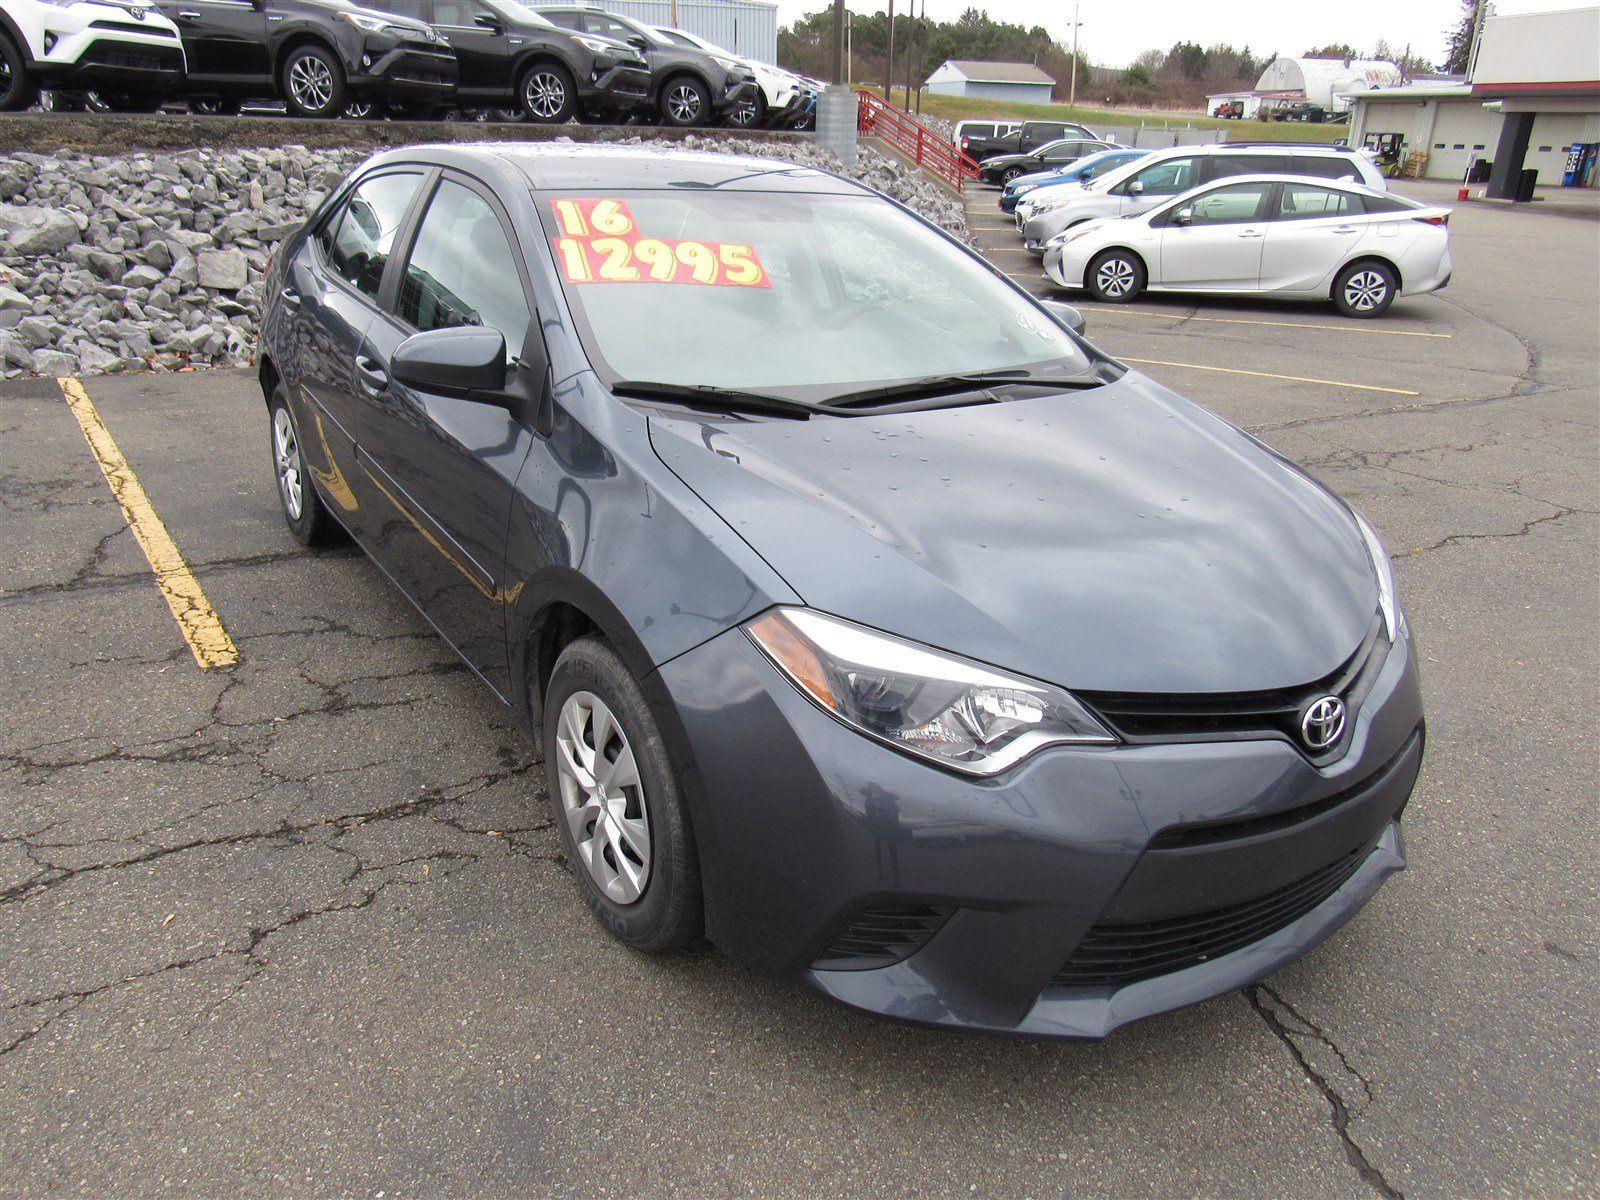 2nd Hand Cars for Sale Near Me Lovely Fresh toyota Used Cars for Sale Near Me Allowed In order to